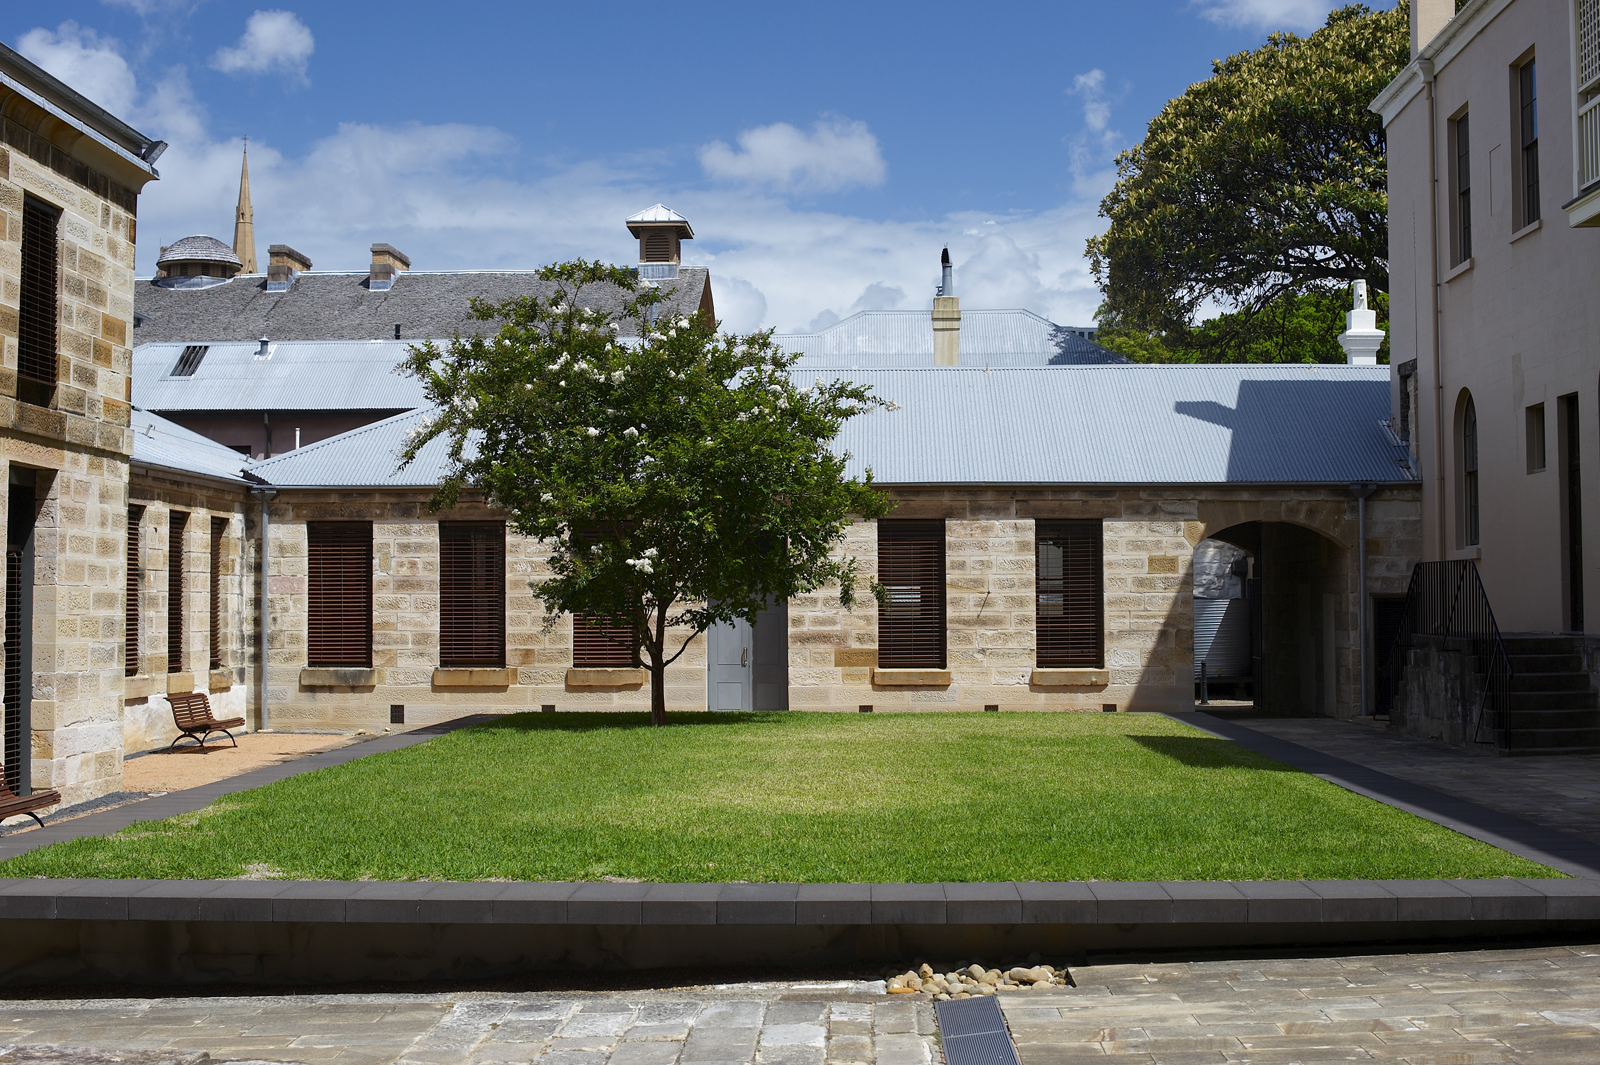 Rectangular green lawn with tree, bounded by low stone wall, in centre of stone paved courtyard, surrounded by three out of the four wings of the Mint buildings.